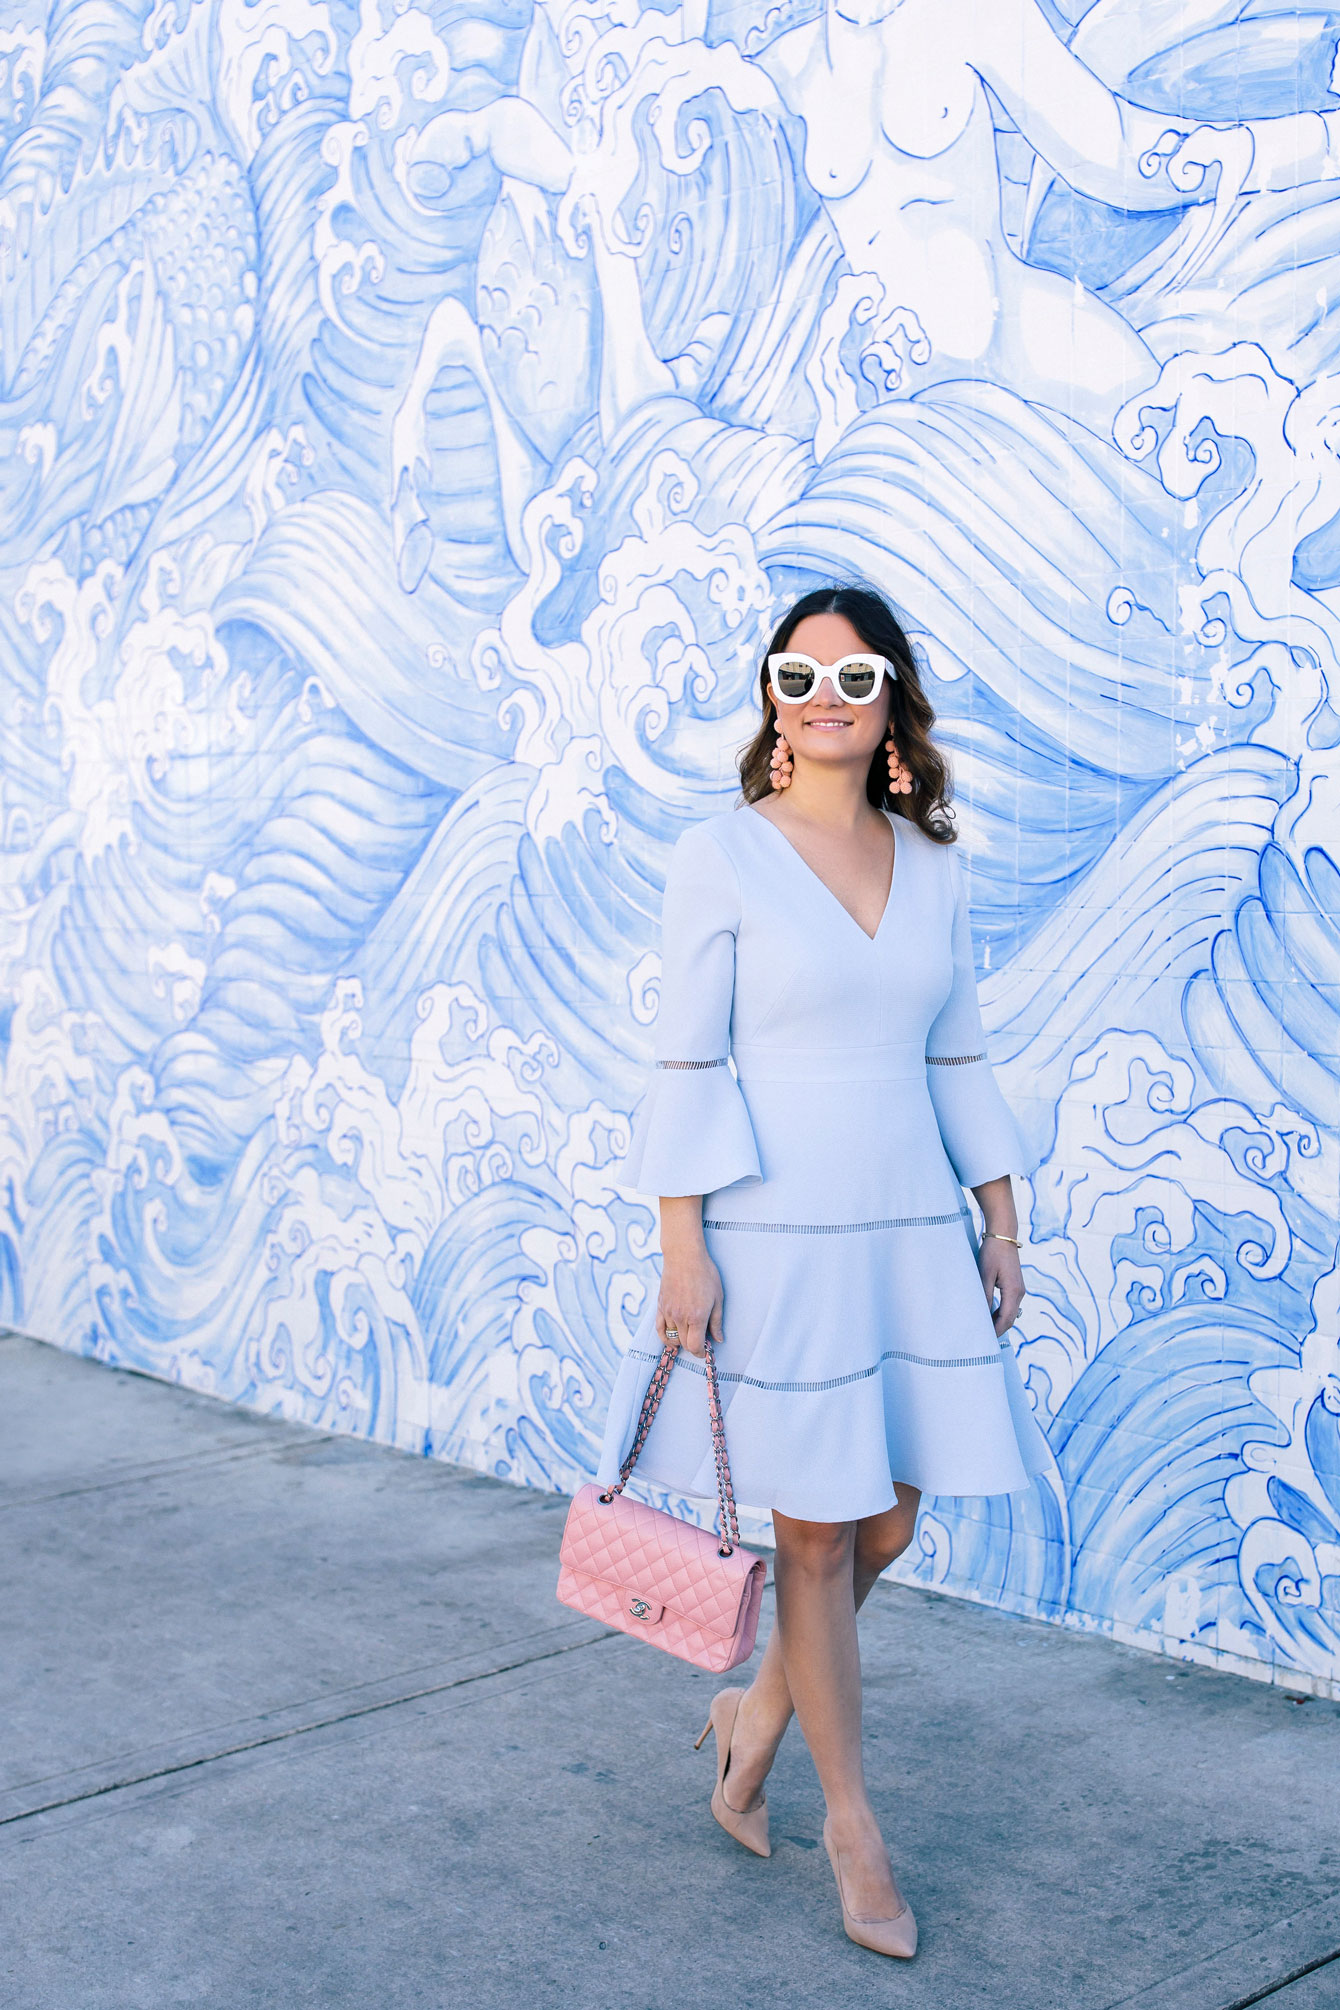 Miami Blue Tile Waves Mural